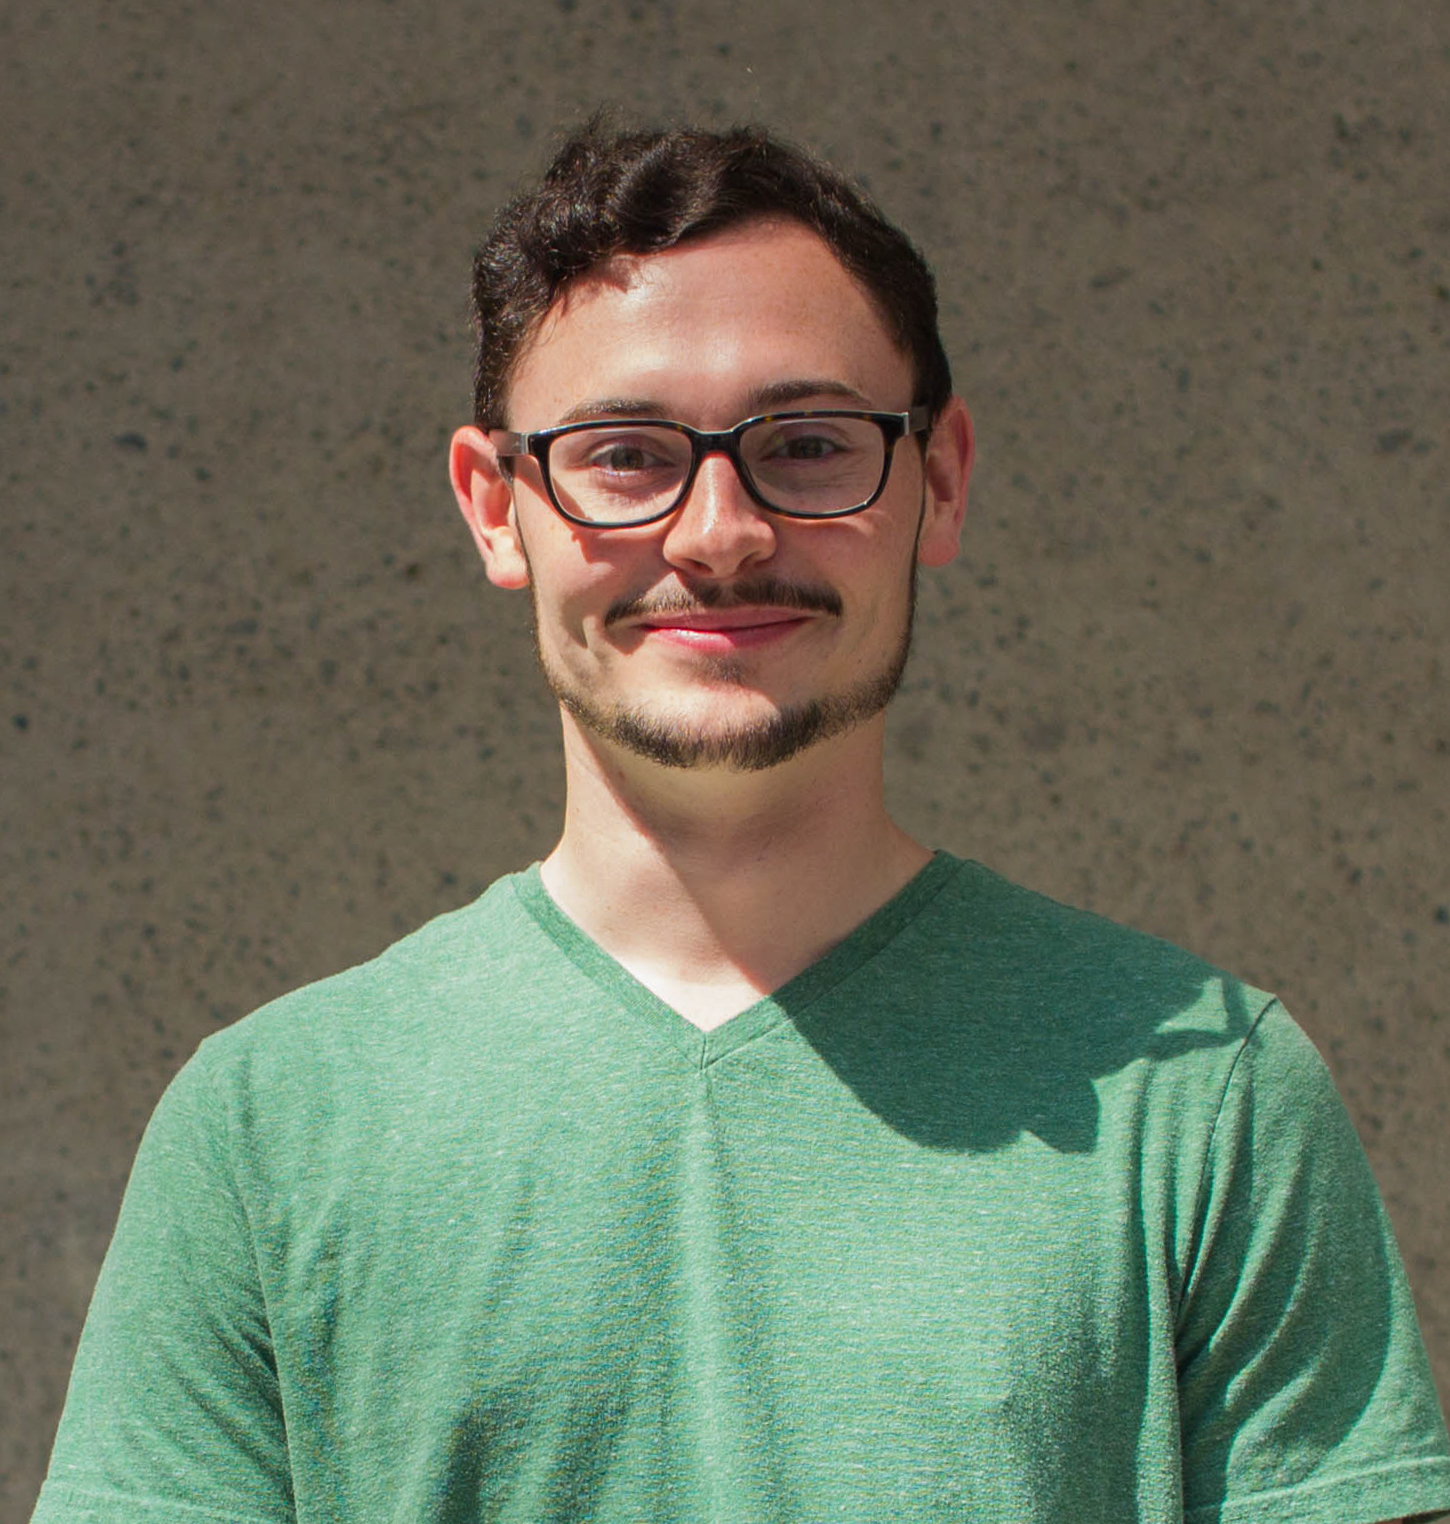 Liam - Foley Prep Pro & Director of Online Tutoring   Liam has been a Foley Prep Pro since December 2016 and joined our full time faculty as soon as he earned his degree in computer engineering in May 2017. Ron has known Liam for three years but only recently learned that 1) Liam was the lead singer in a band, 2) was captain of his soccer, swimming, and track teams and 3) has been programming since he was eight years old. Even before hearing that, Ron thought of Liam as one of the smartest, most natural teachers that he's ever eavesdropped on and observed. (Yes Ron eavesdrops on teachers who work for him, this is part of the deal working at Foley Prep).   View Liam's weekly classes